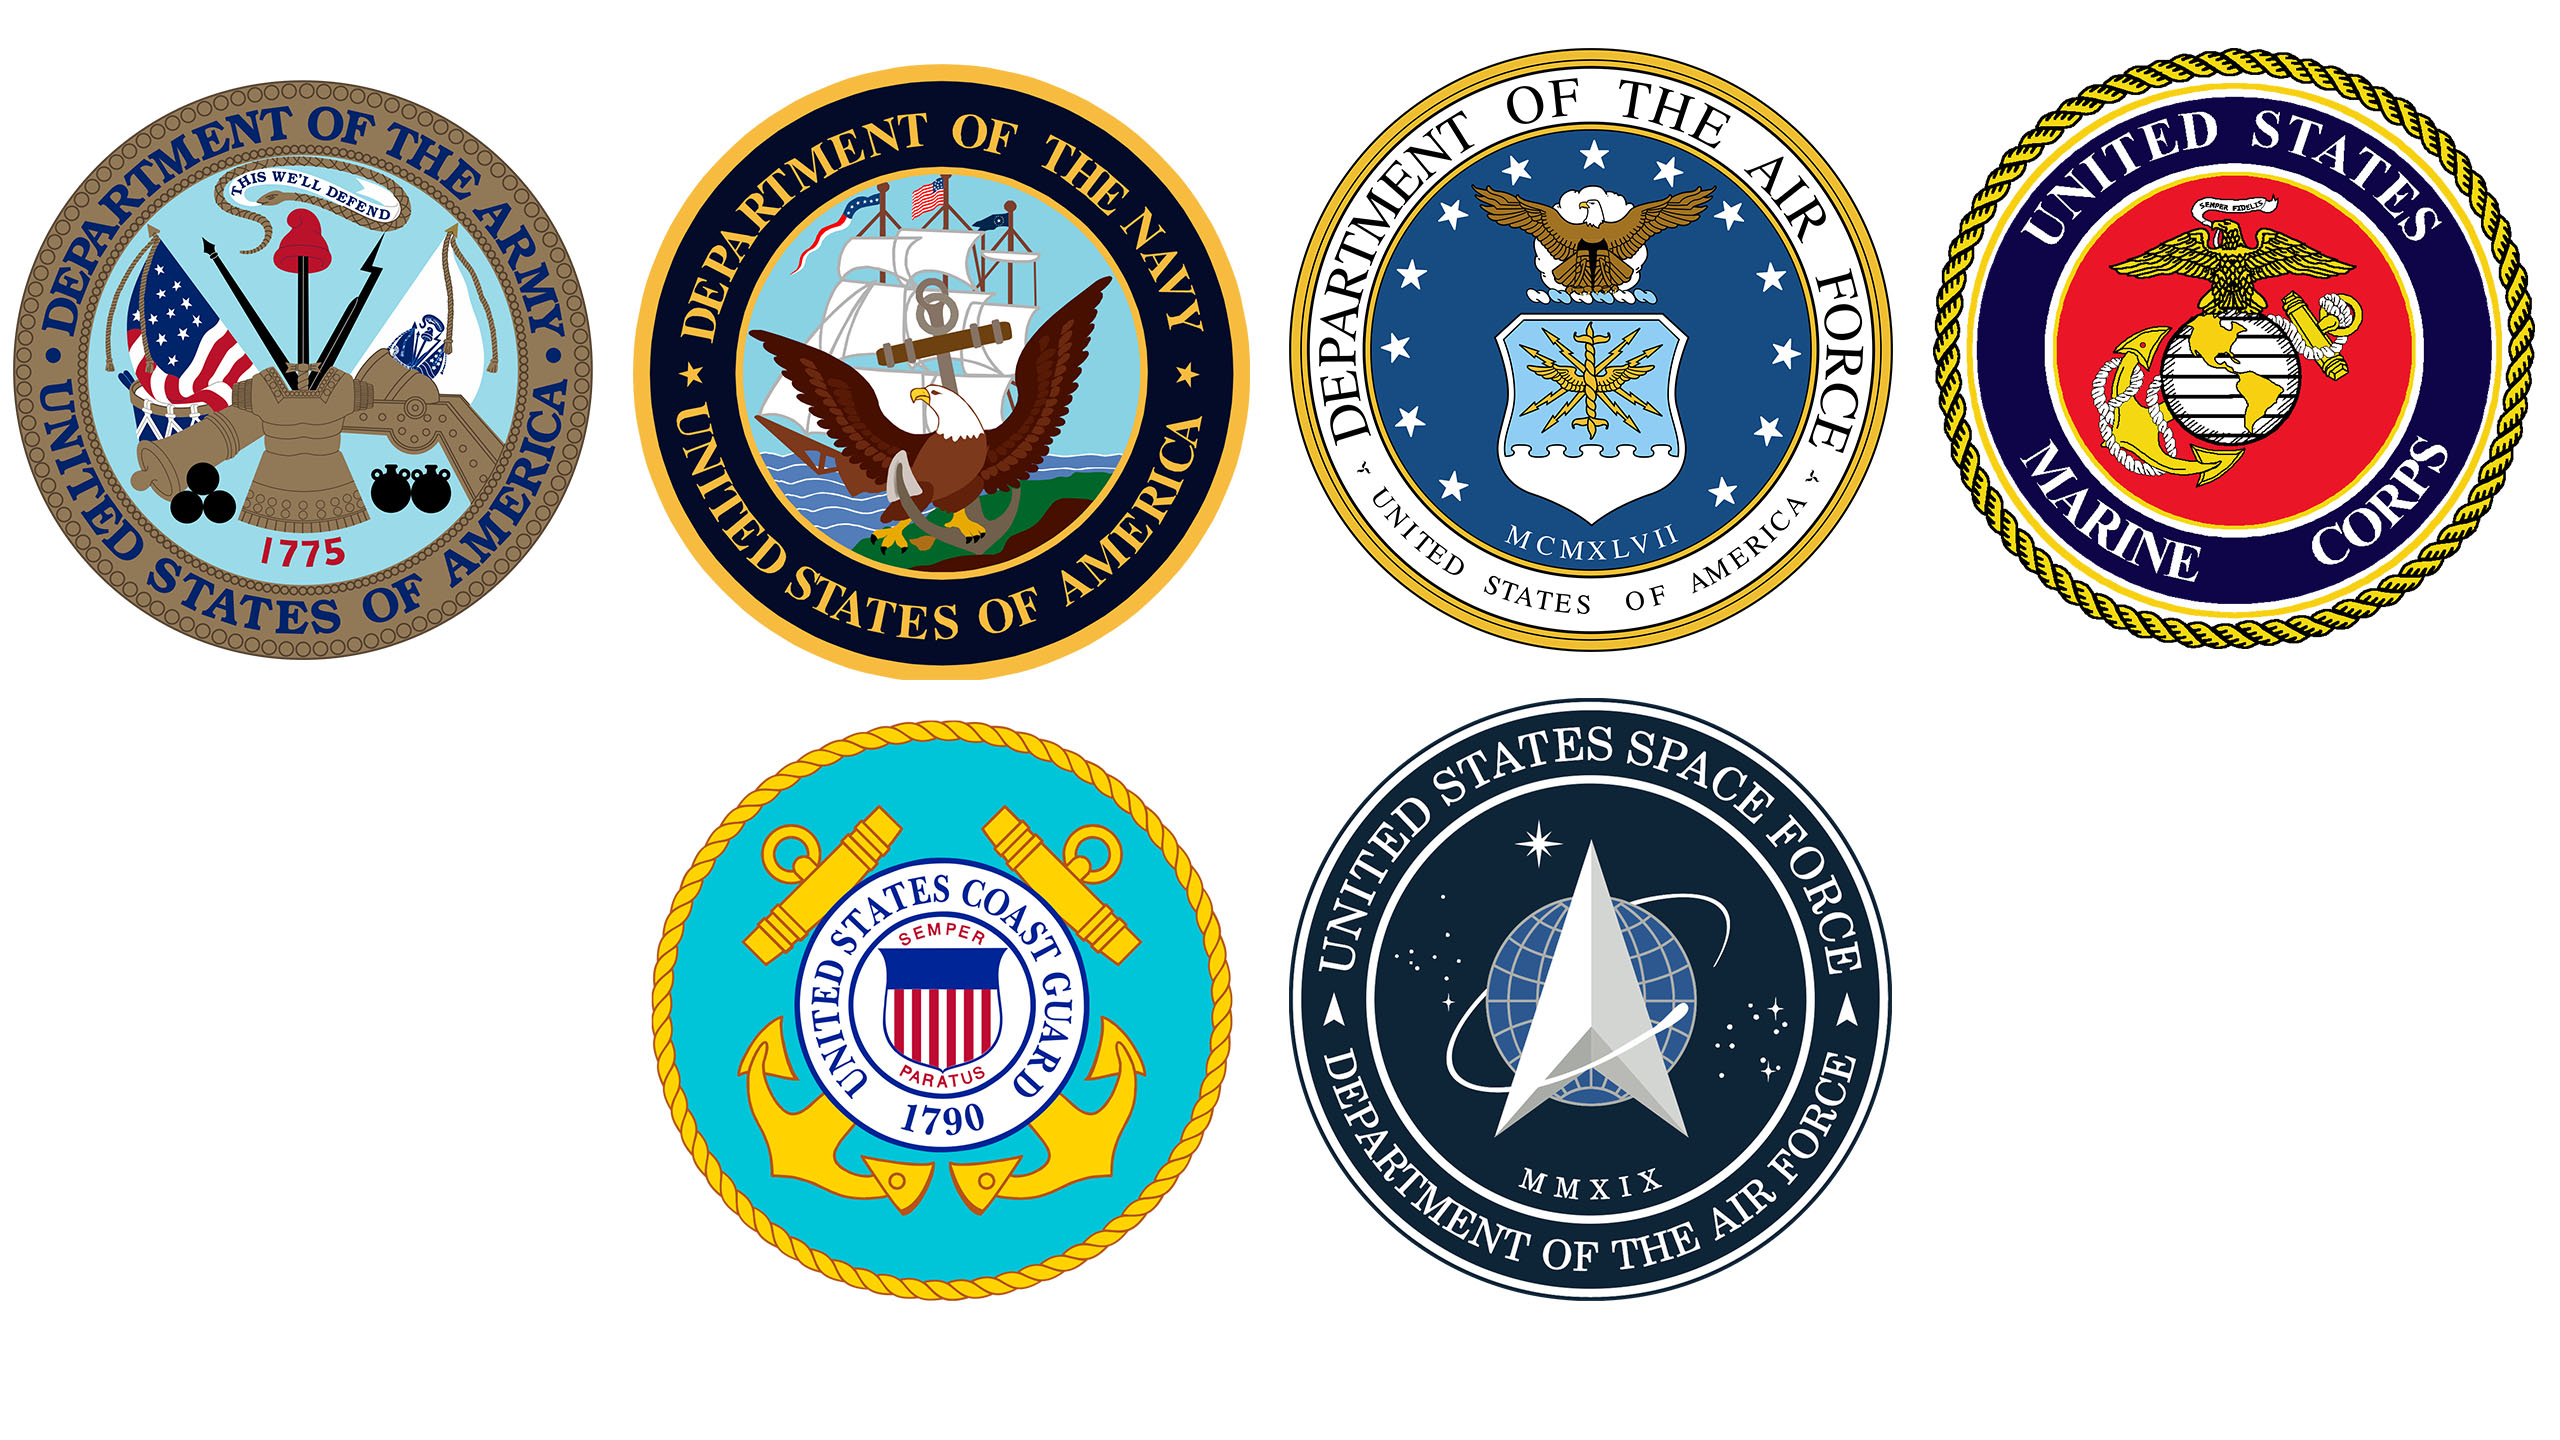 Updated Armed Forces Seals